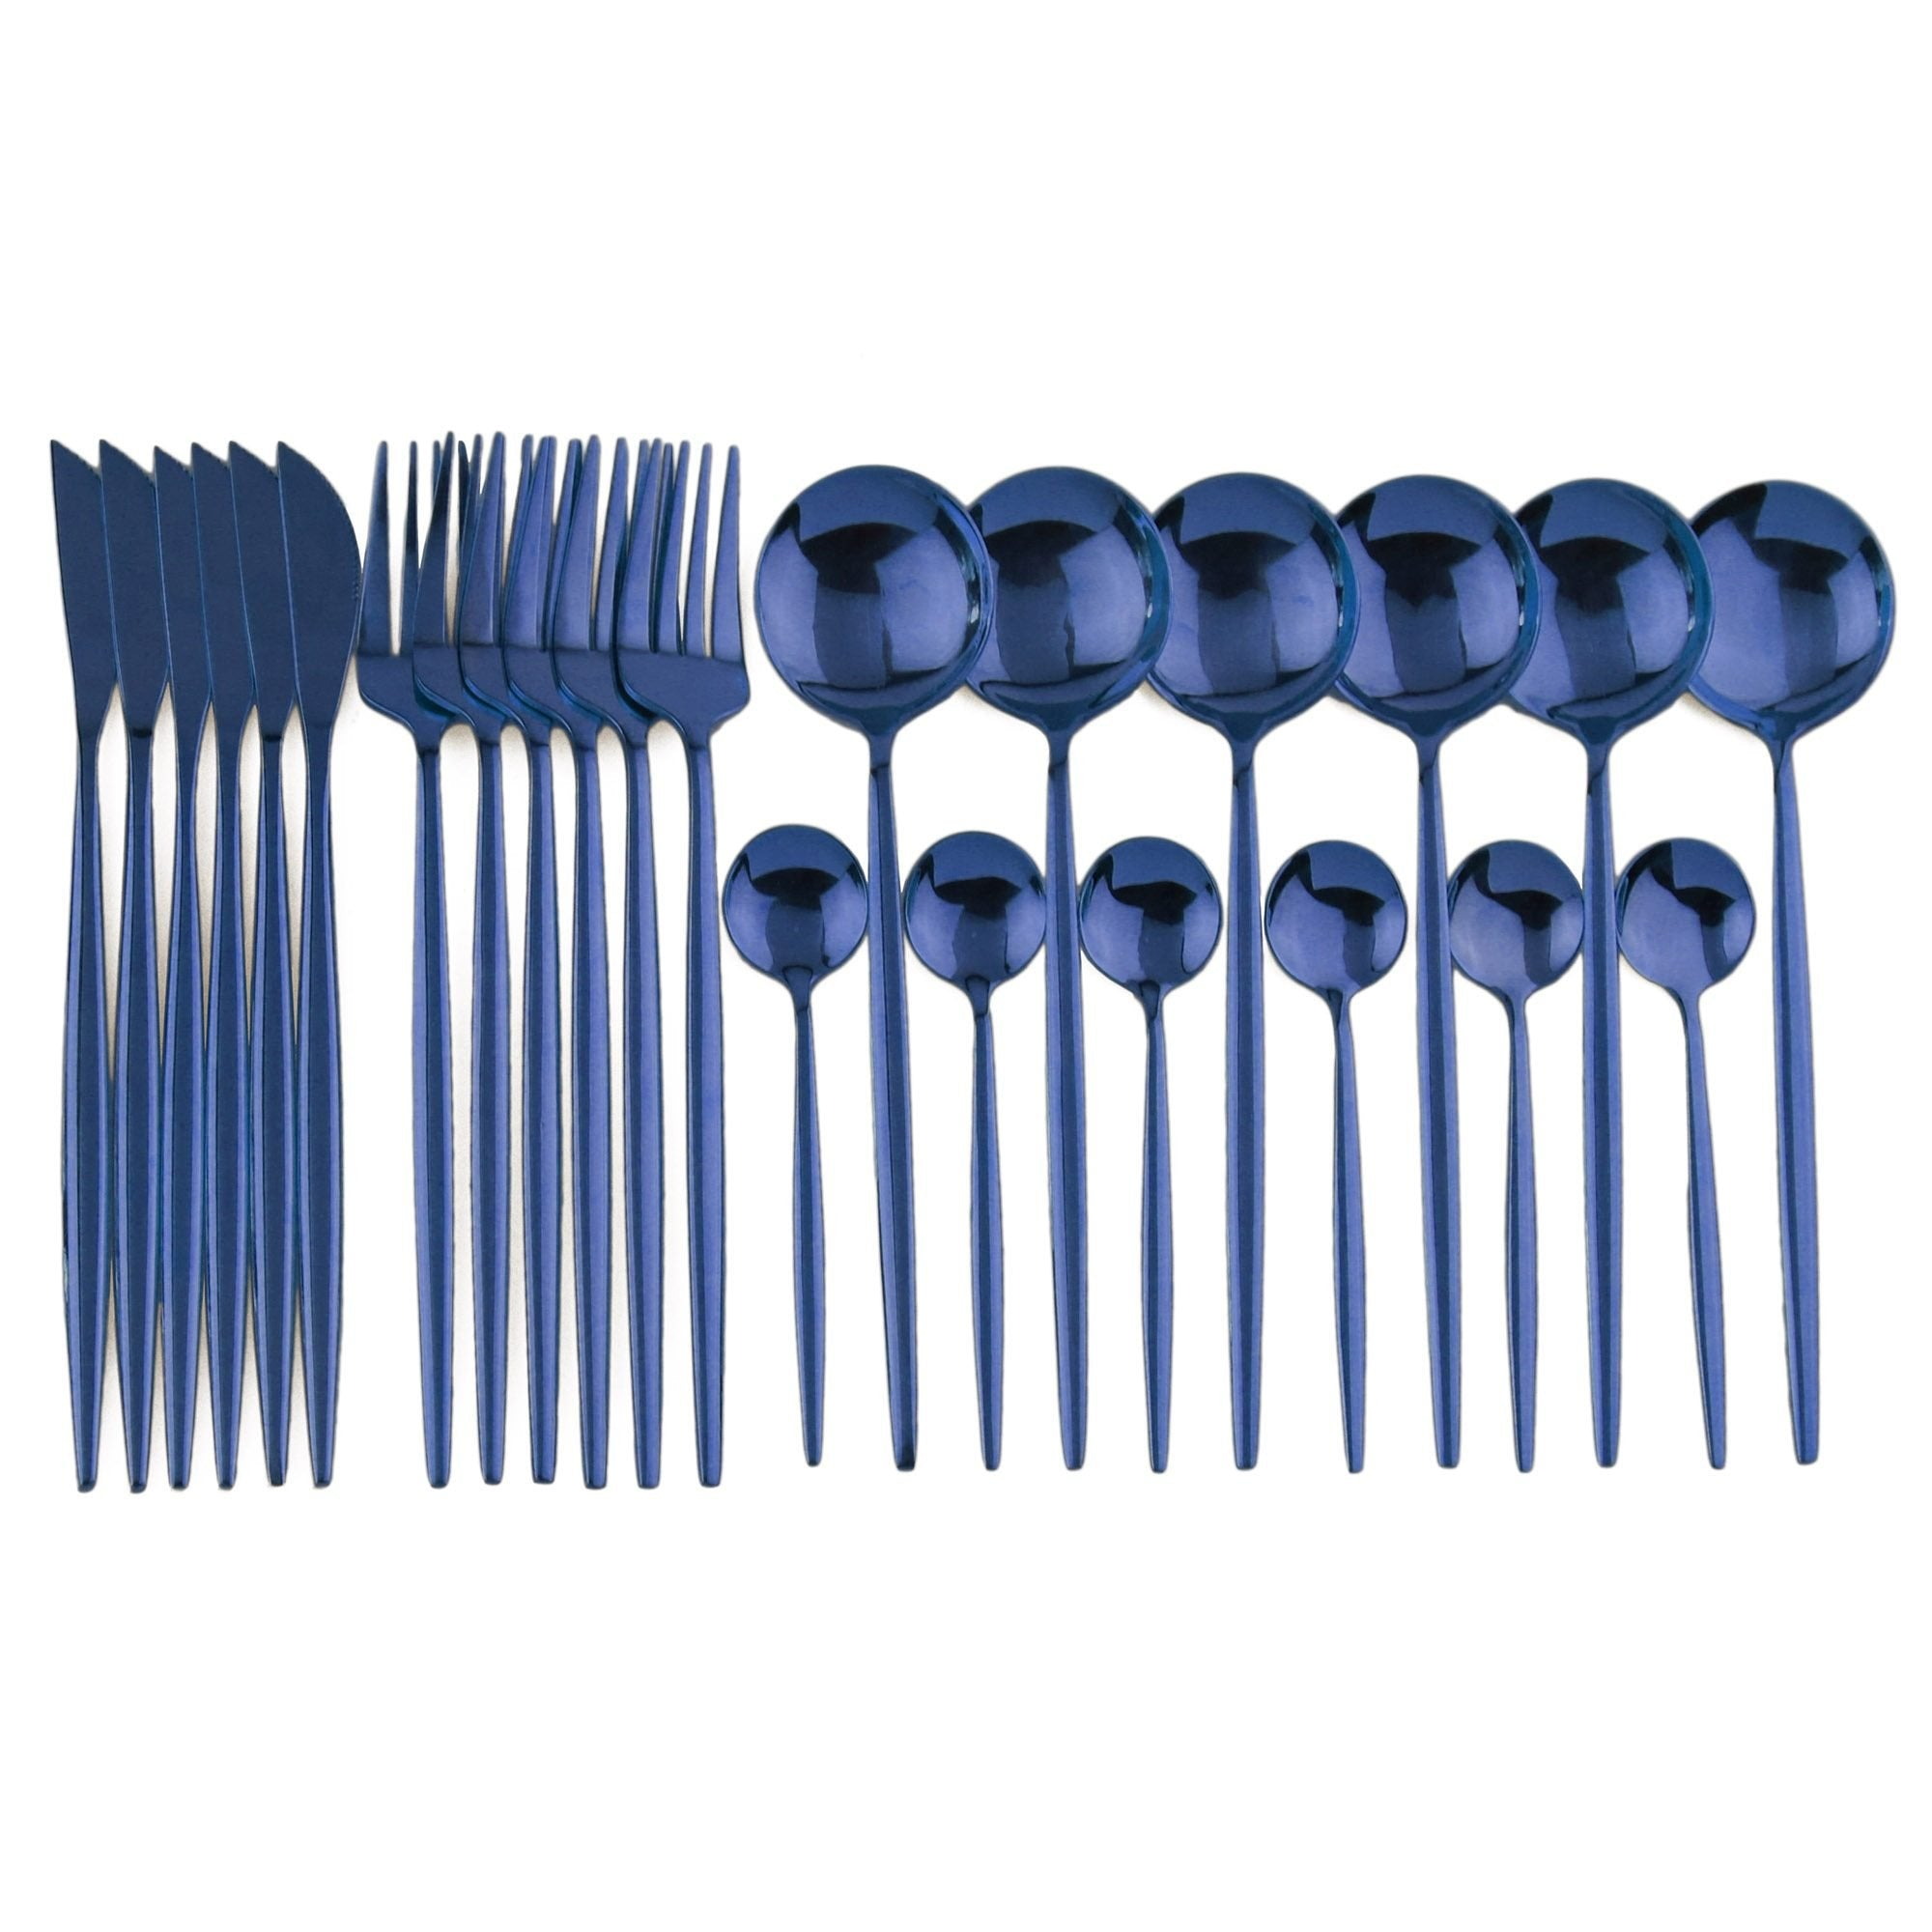 Couvert de table lot de 24 pcs - picoloprix